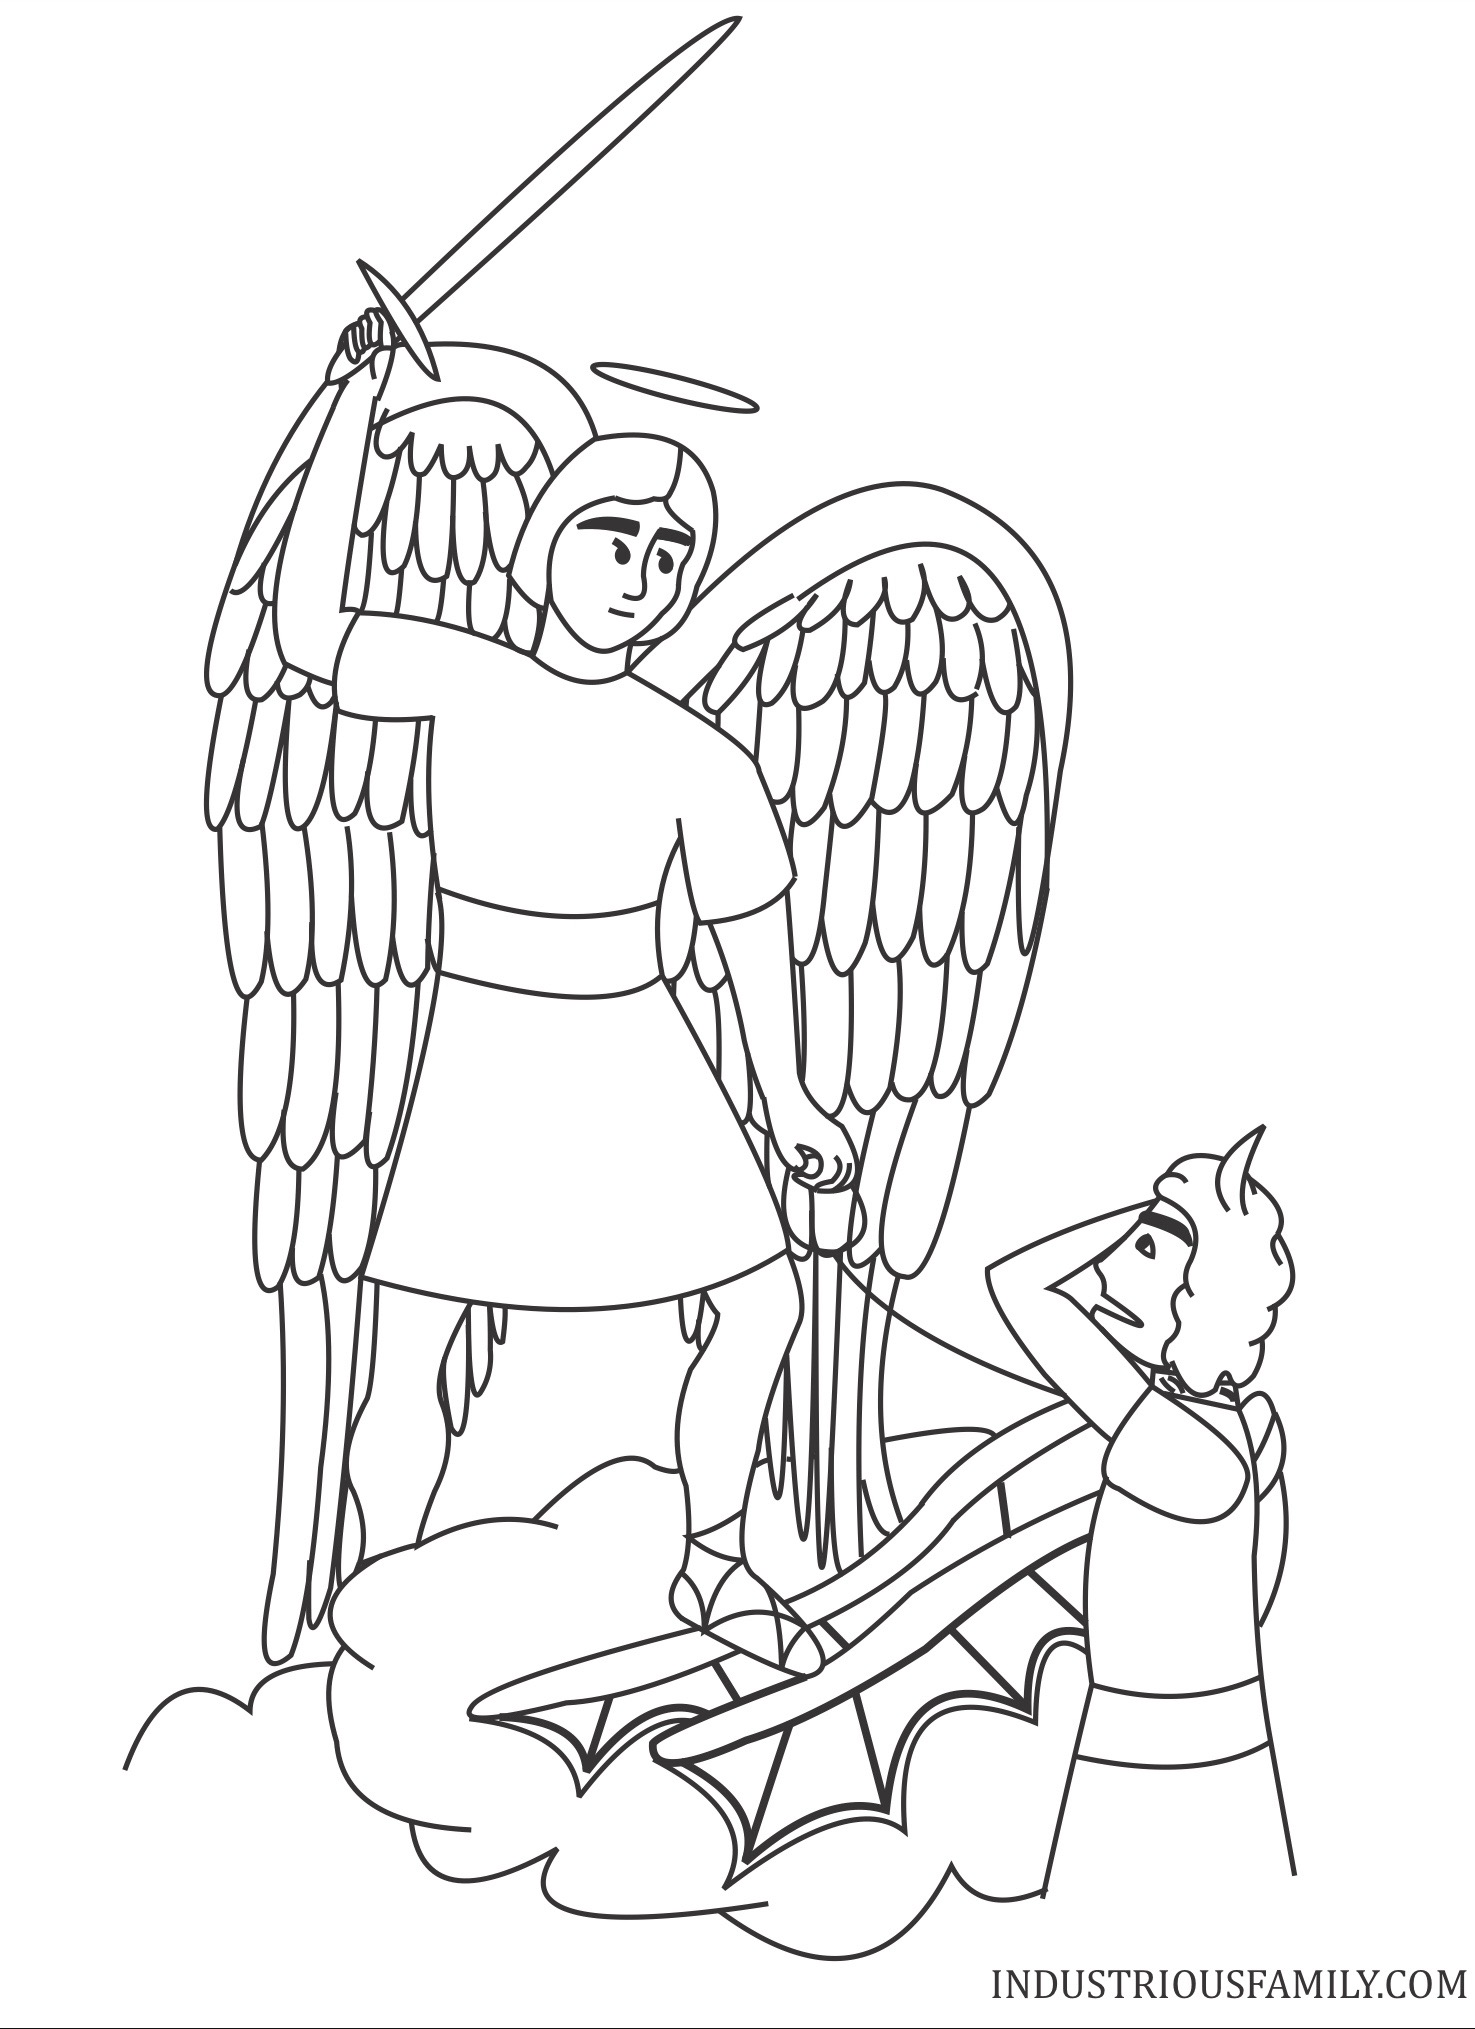 Free Coloring Pages For Catholics